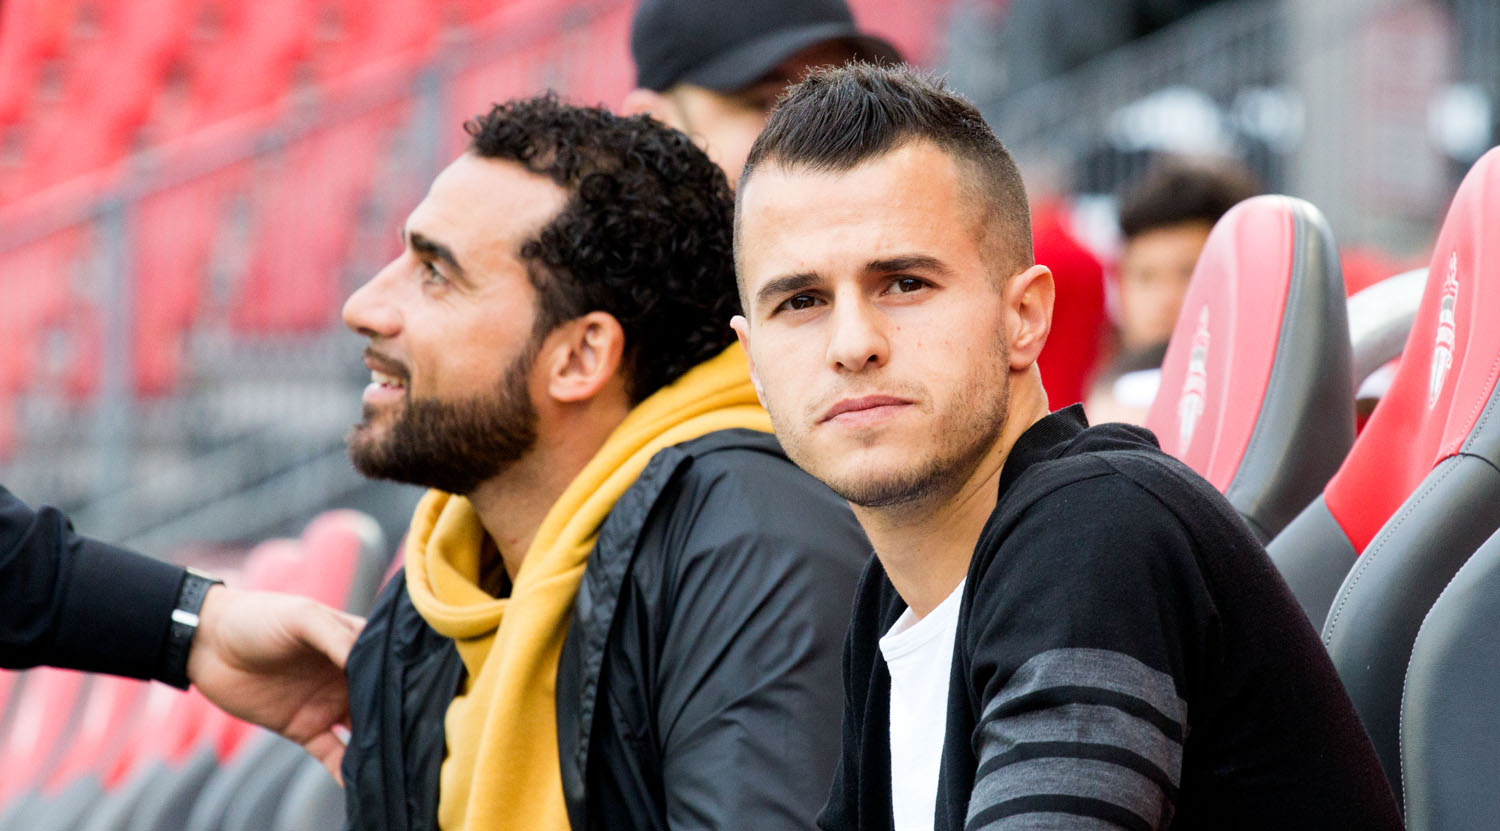 Two Toronto FC legends Dwayne De Rosario and Sebastian Giovinco watching the pregame warm ups from the bench. Image by Dennis Marciniak of denMAR Media.